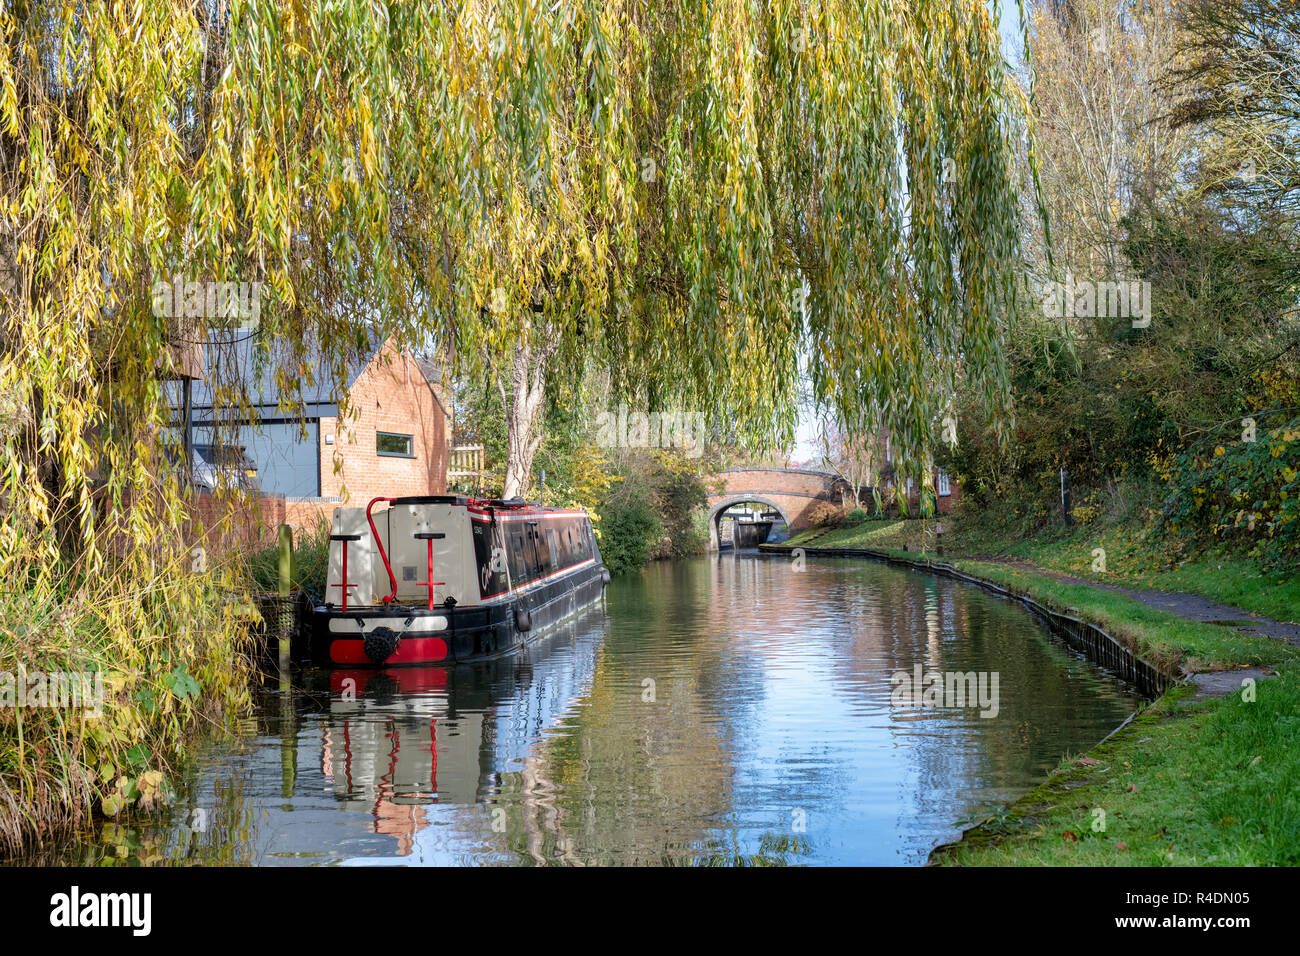 Canal boat on the oxford canal in autumn. Cropredy, Oxfordshire, England - Stock Image